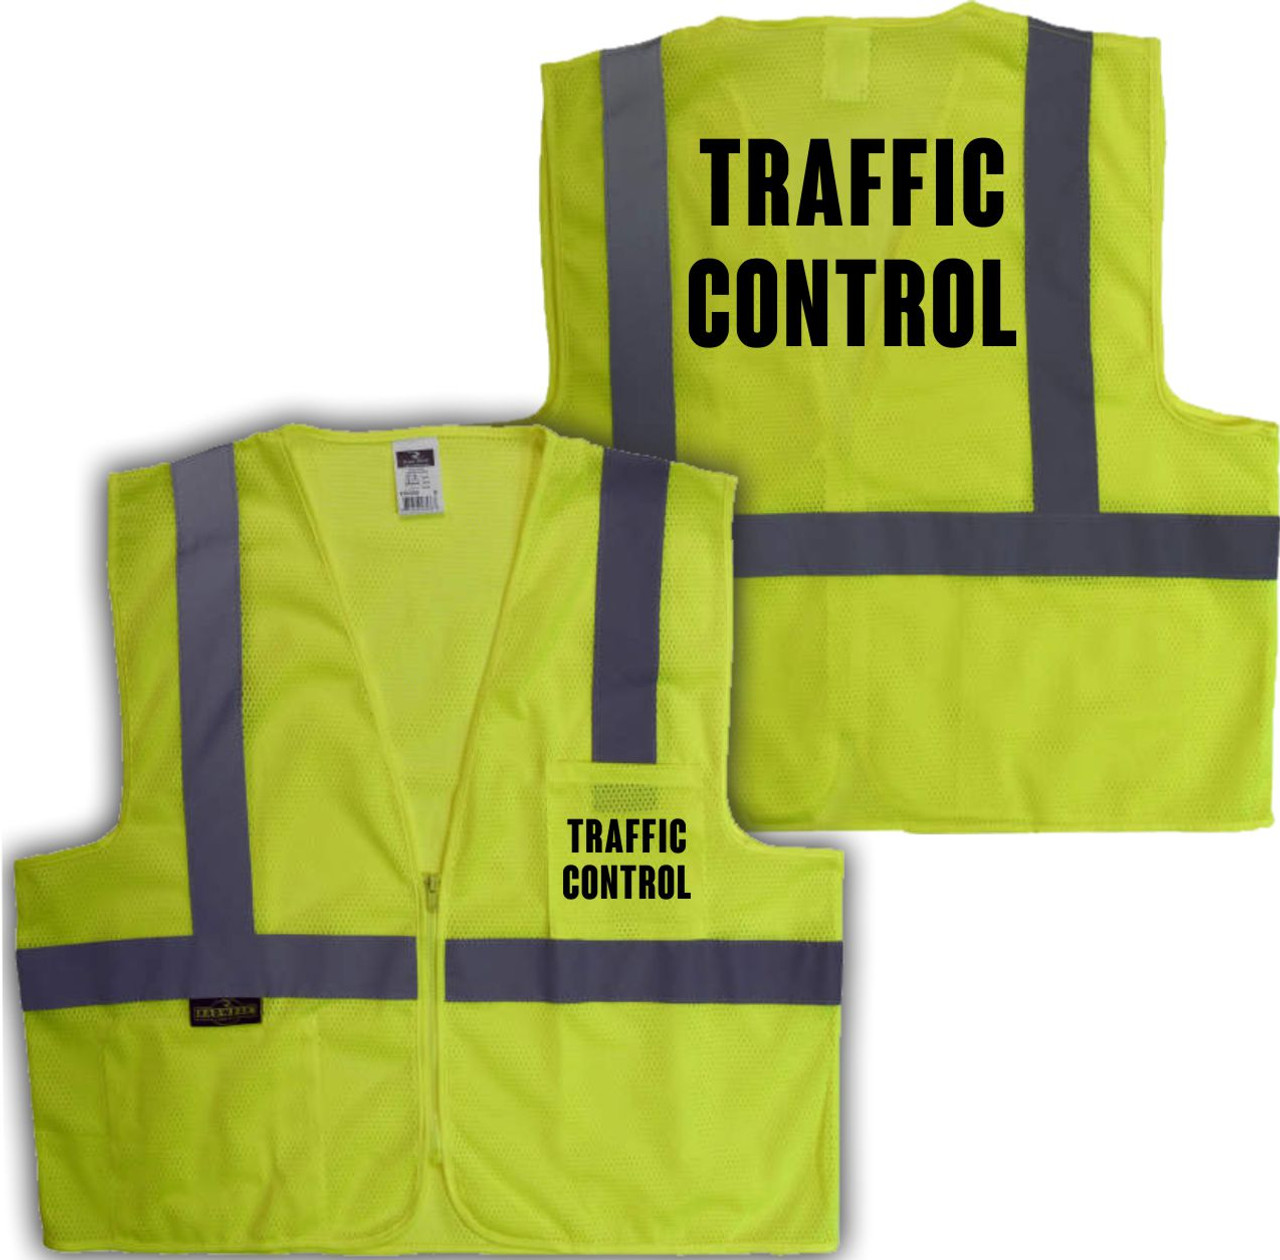 Printed TRAFFIC CONTROL Safety Vest Class 2